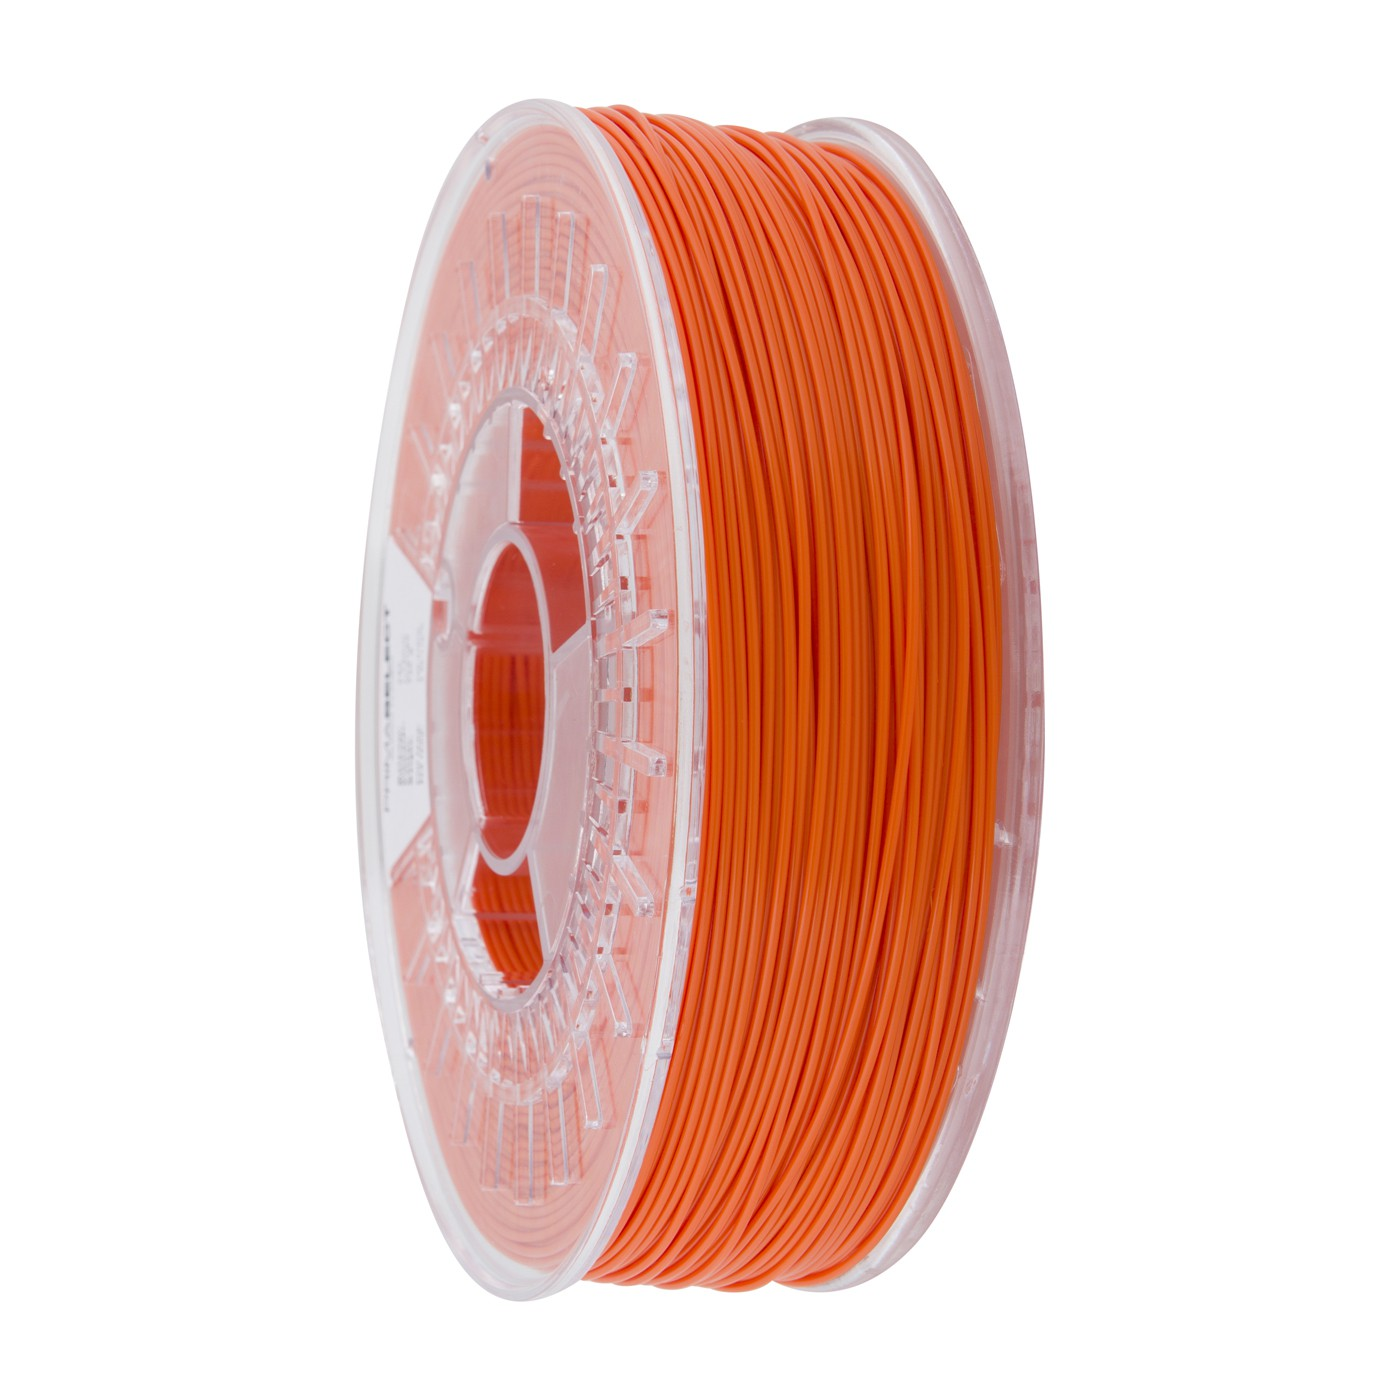 PrimaSelect ABS - 1.75mm - 750 g - Orange